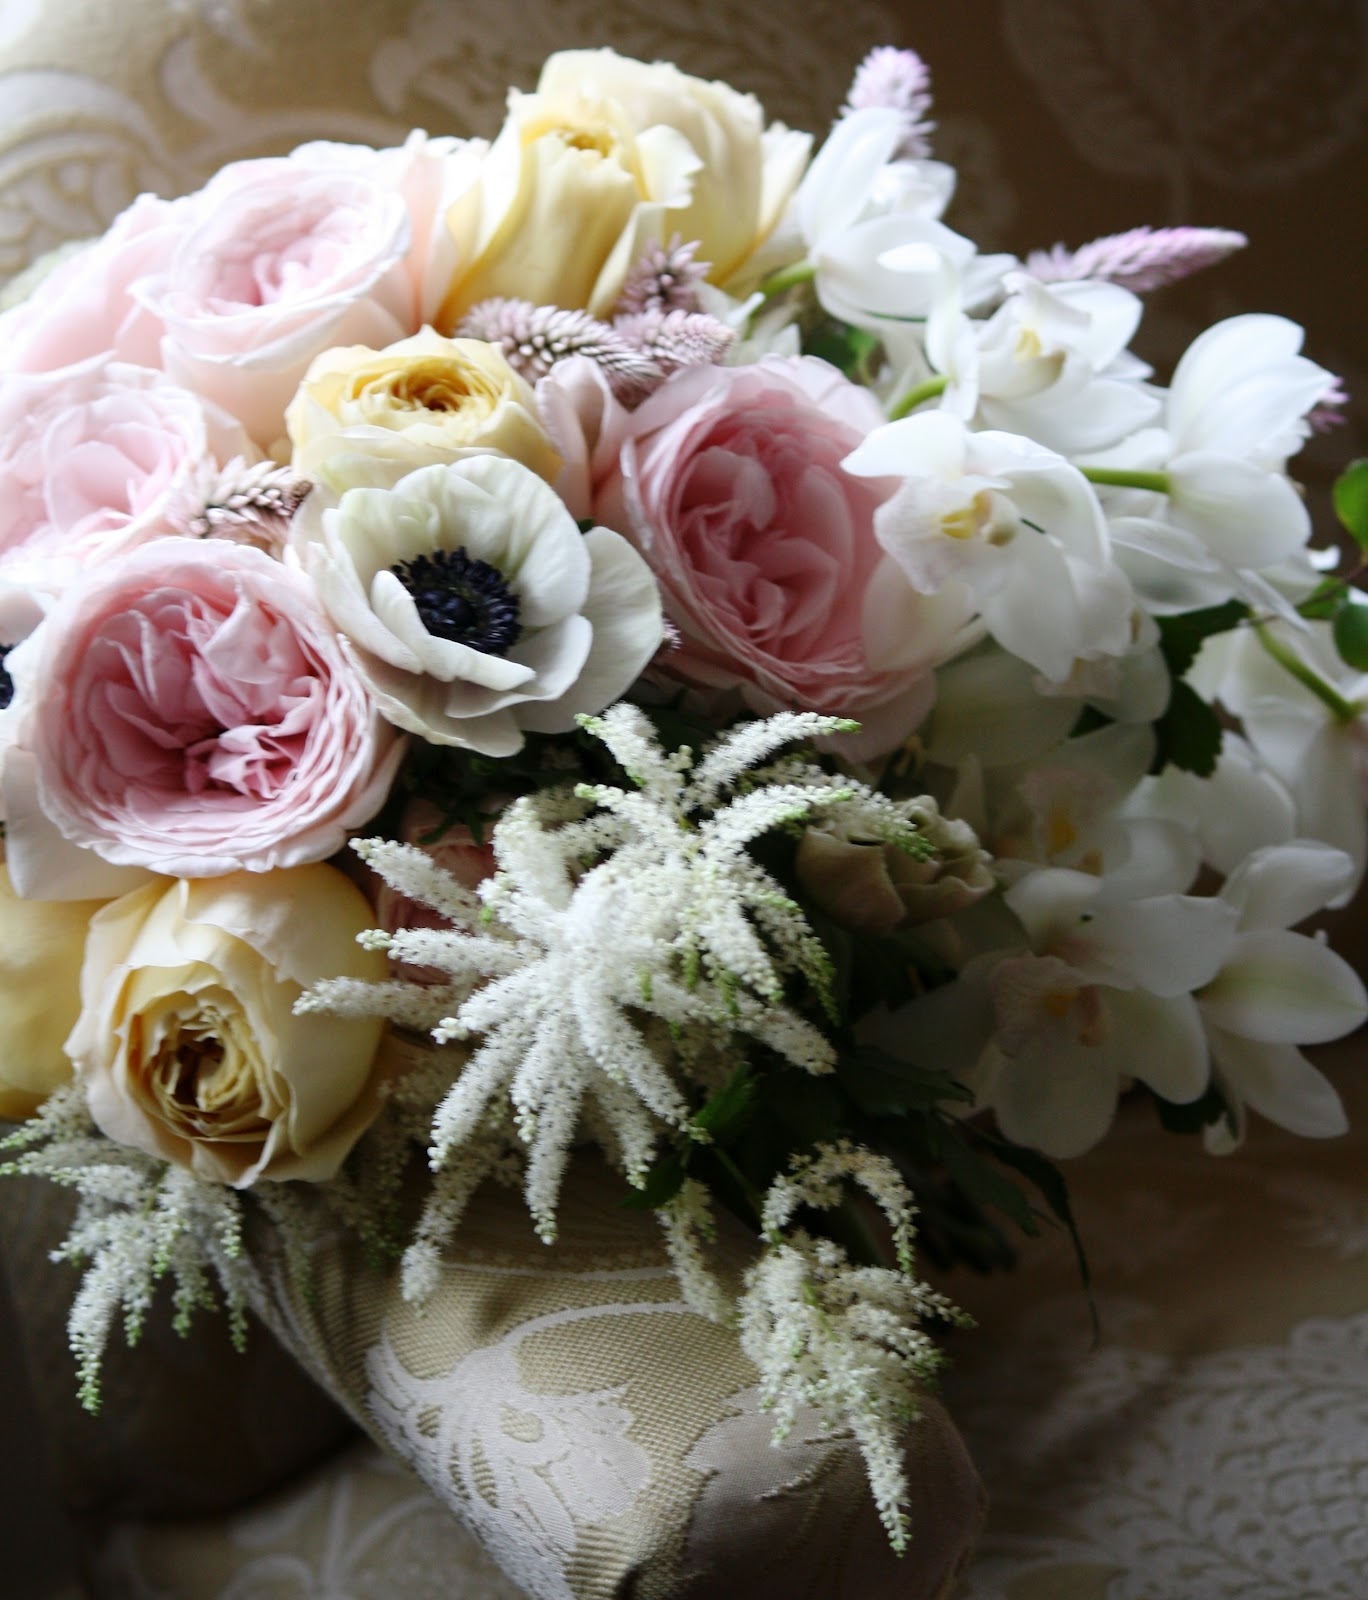 The Plaza Bridal Bouquet  - Garden Roses, Anemones, Astilbe Bride's Bouquet - Garden Rose Bouquet, David Austin Rose Bouquet, Juliet Garden Rose, Patience Garden Rose, Rose Bridal Bouquet, Rose Bouquet, Wedding Bouquet - Splendid Stems Wedding Flowers - Wedding Florist